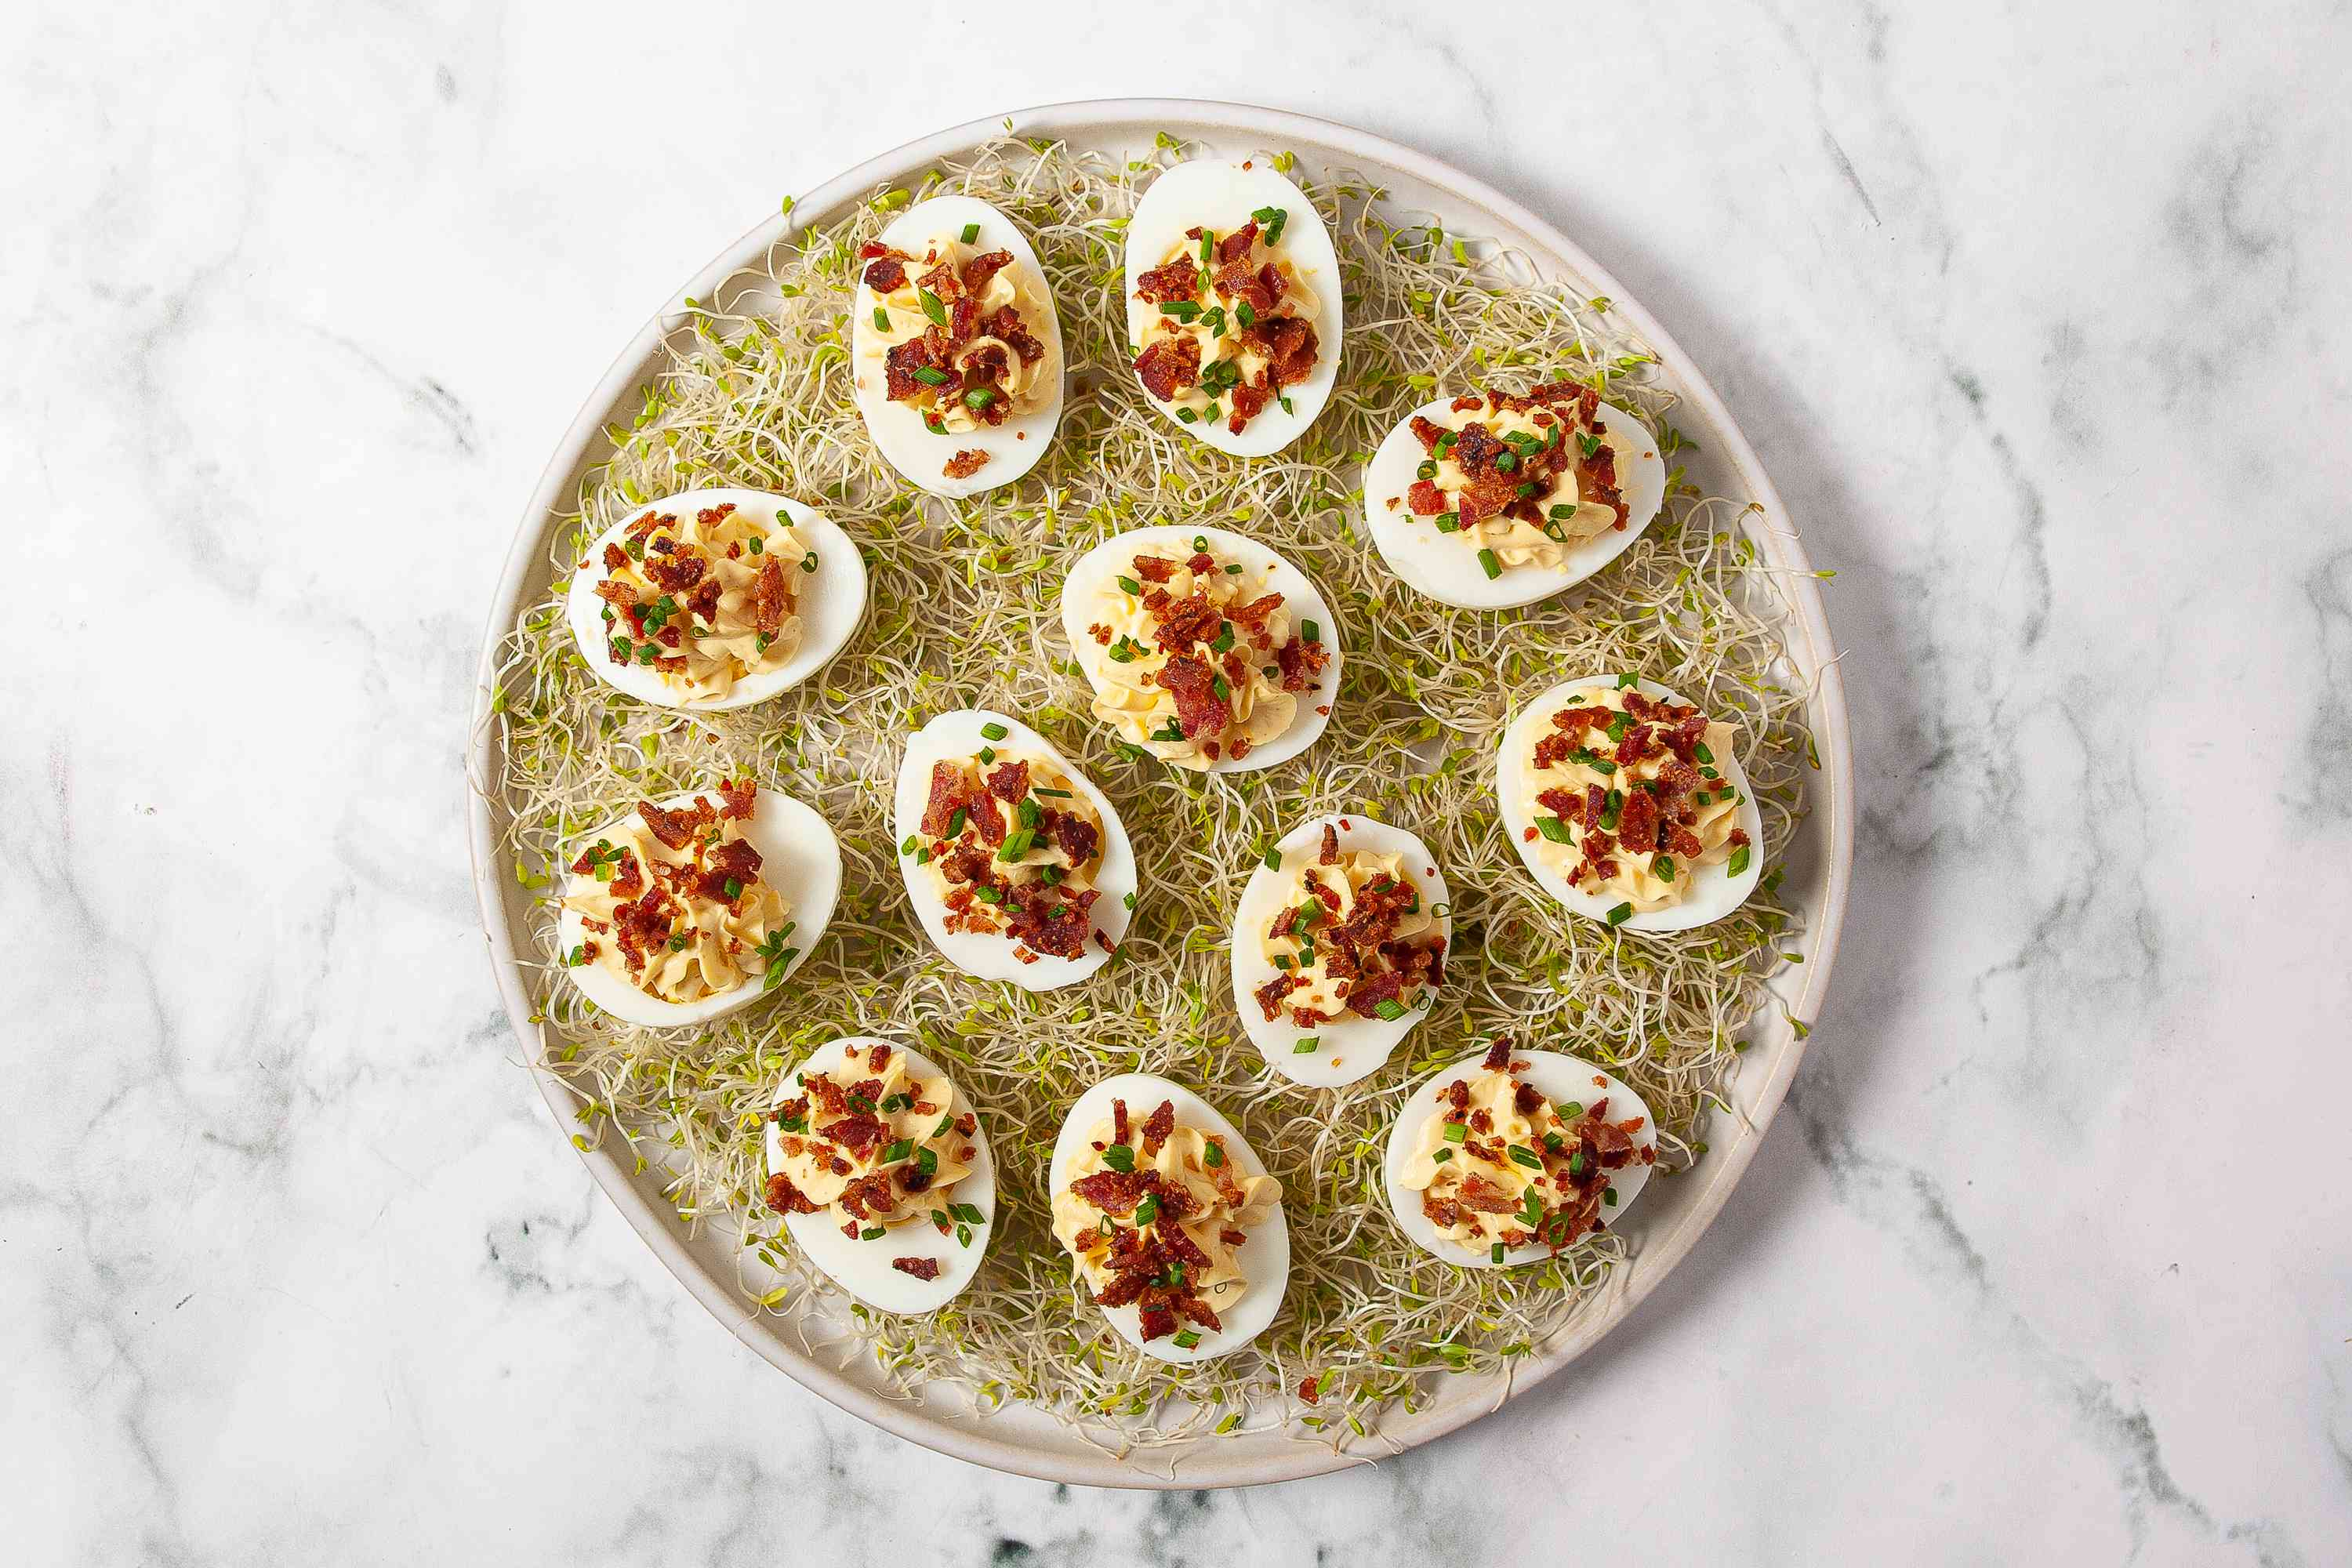 Deviled eggs with bacon and chives on a platter with alfalfa sprouts